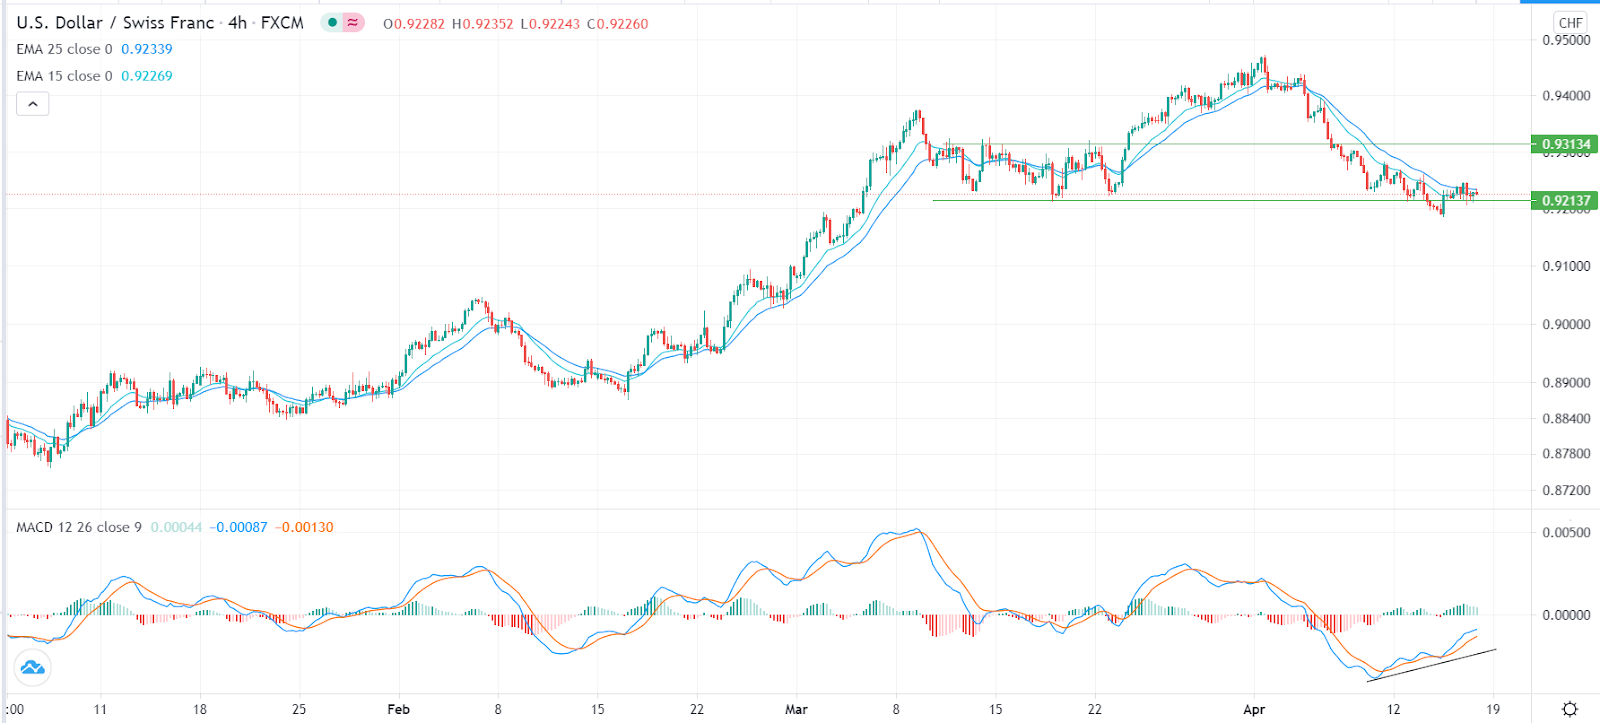 USD/CHF struggles after the weak Swiss producer inflation data